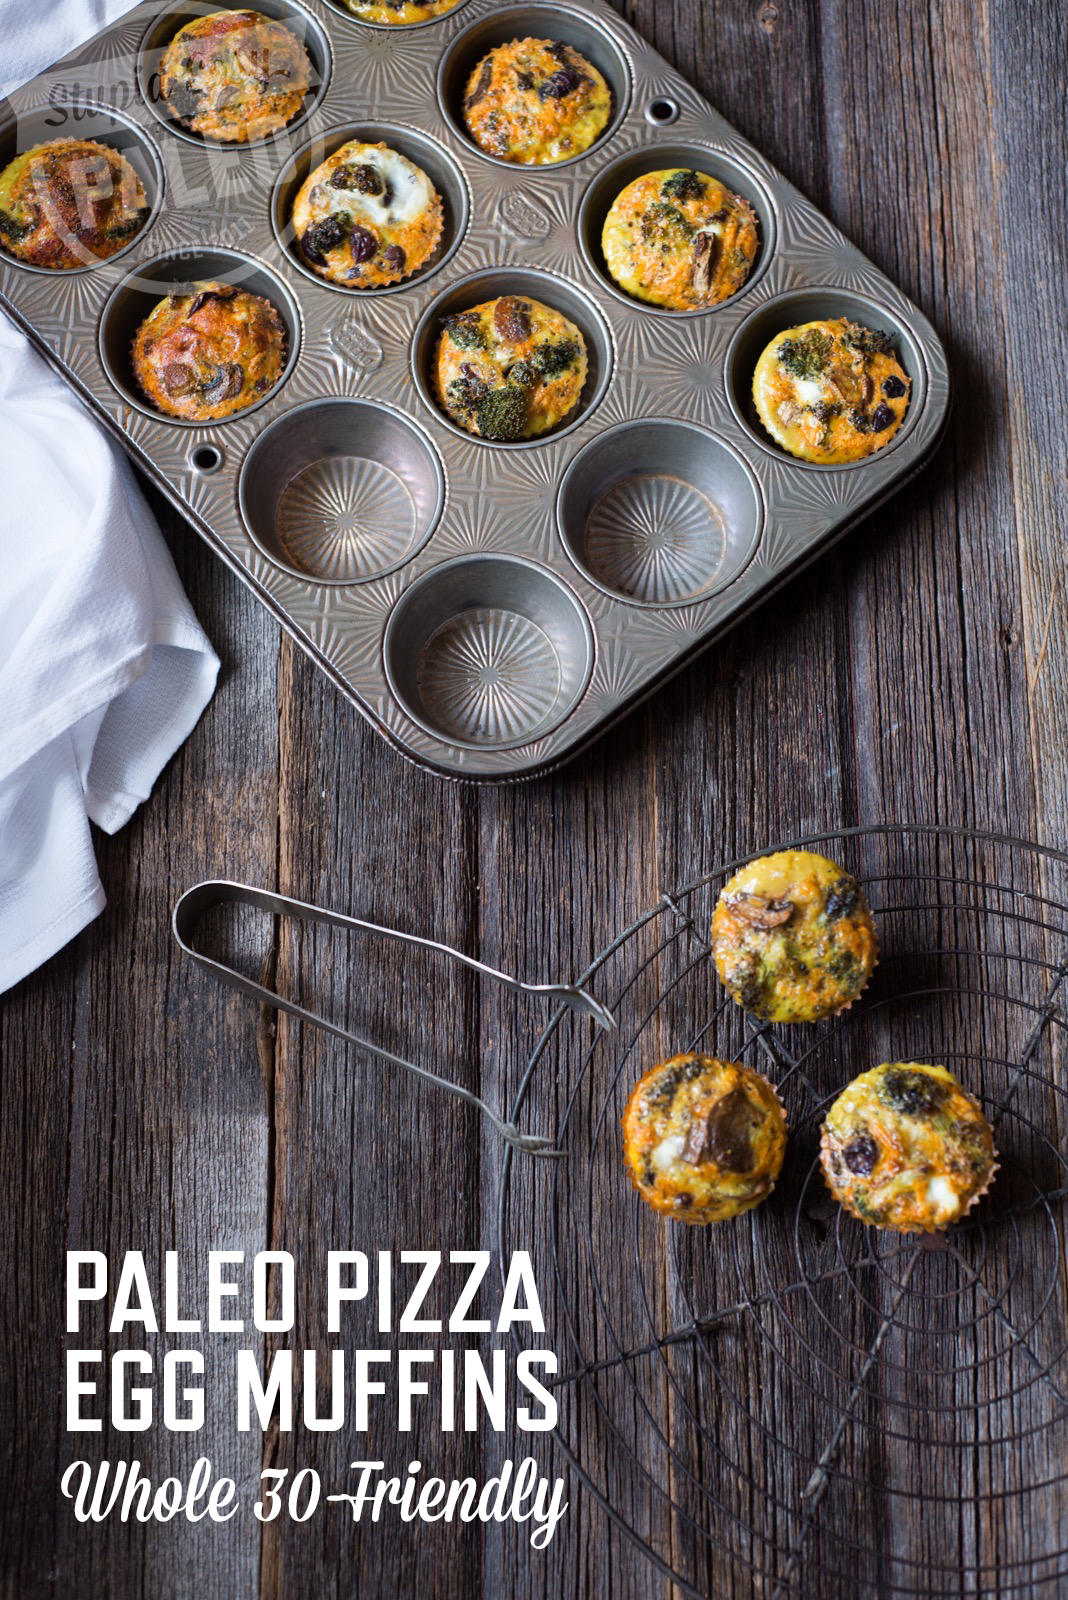 These delicious Paleo Pizza Egg Muffins have all the flavor of pizza without the gluten or dairy. Loaded with veggies & Whole30-friendly! | StupidEasyPaleo.com